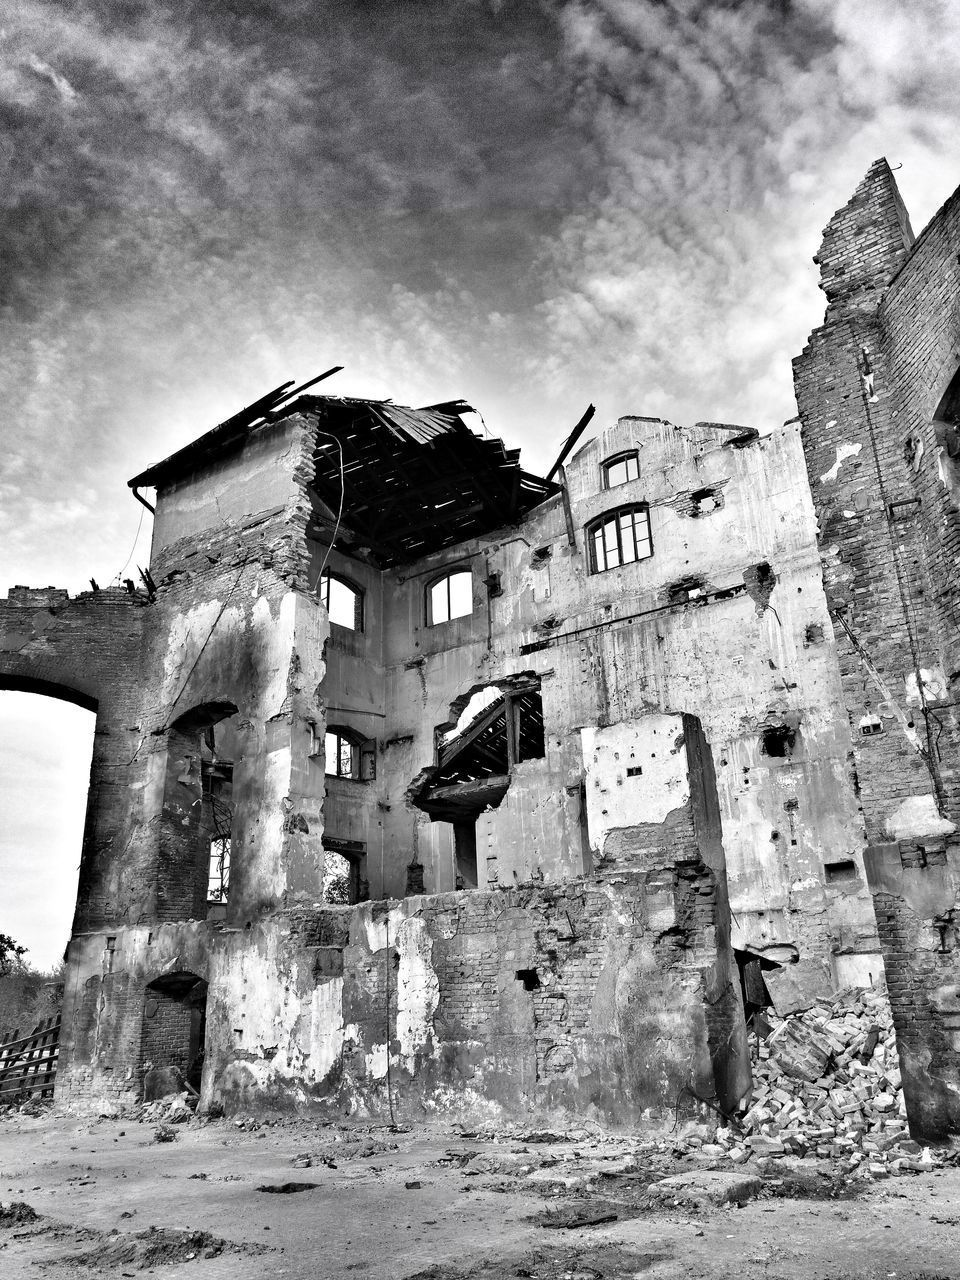 architecture, built structure, building exterior, damaged, abandoned, ruined, old, old ruin, run-down, obsolete, destruction, sky, bad condition, low angle view, day, no people, outdoors